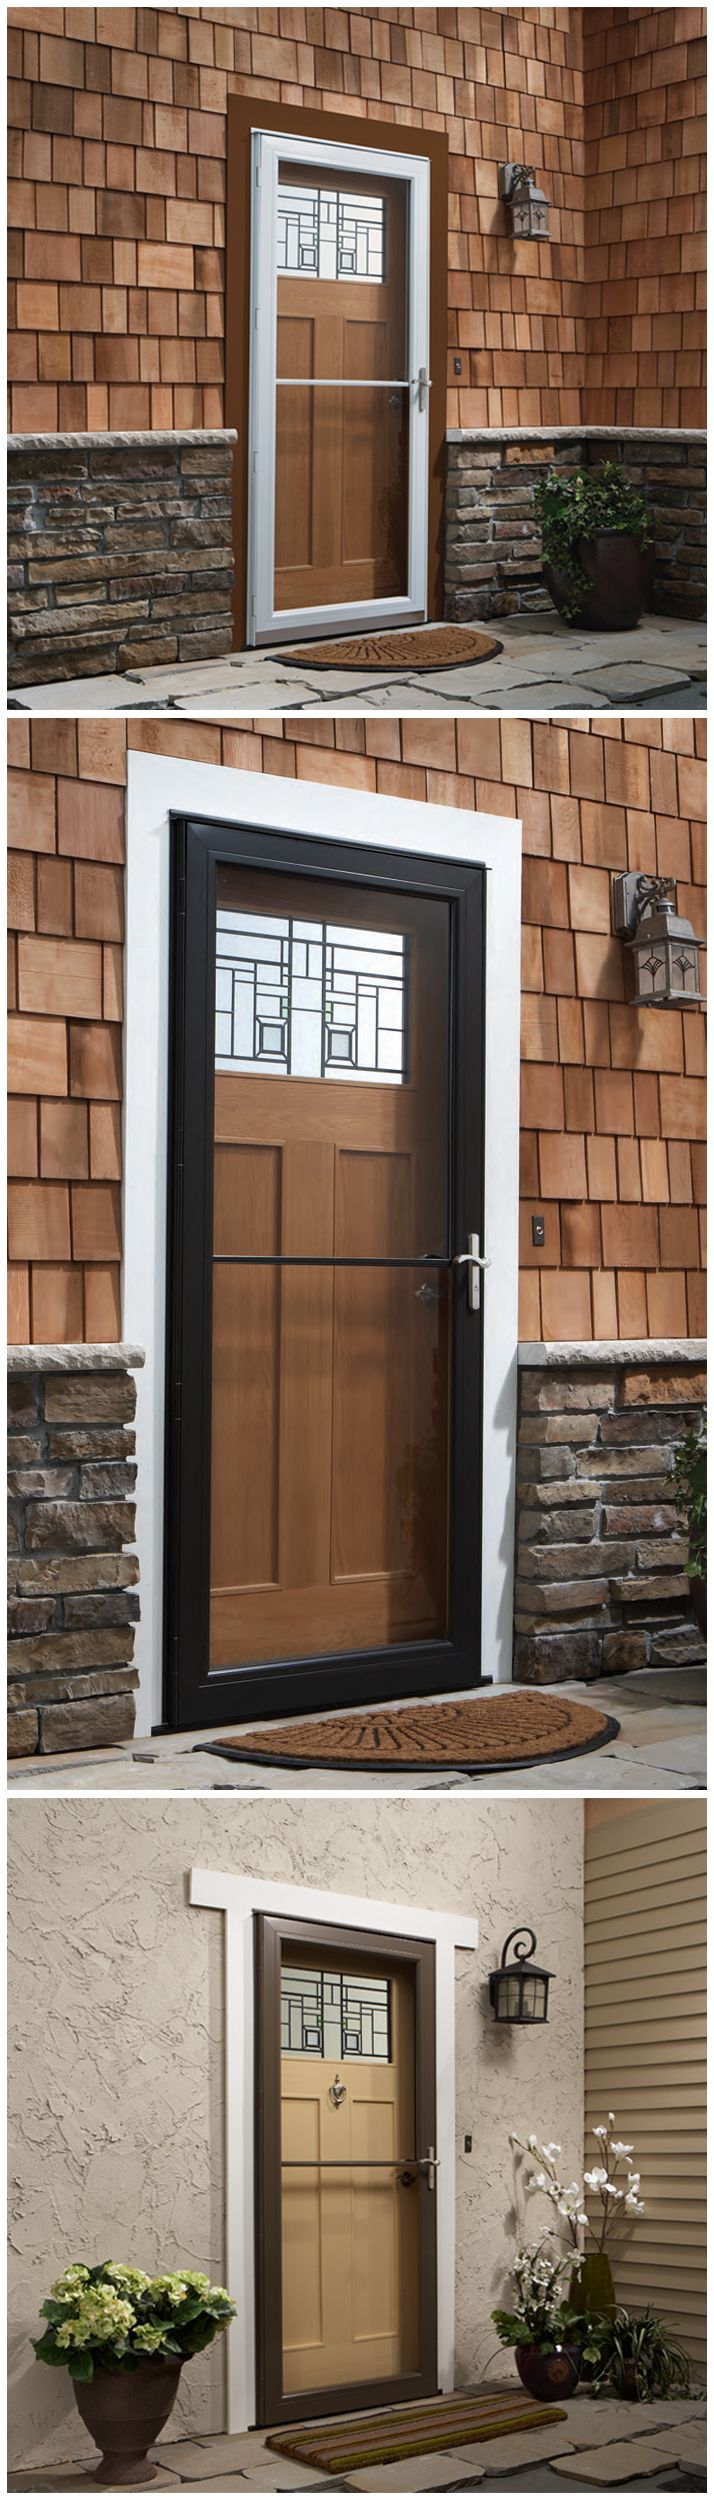 """Choose a """"self-storing"""" storm door for a retractable insect screen that hides away when it's not needed or a glass panel that slides up for full glass protection. It provides outside ventilation when you want it, without spoiling the view when you don't. That's just one of the many storm door options we have available at The Home Depot. Click through to learn more."""